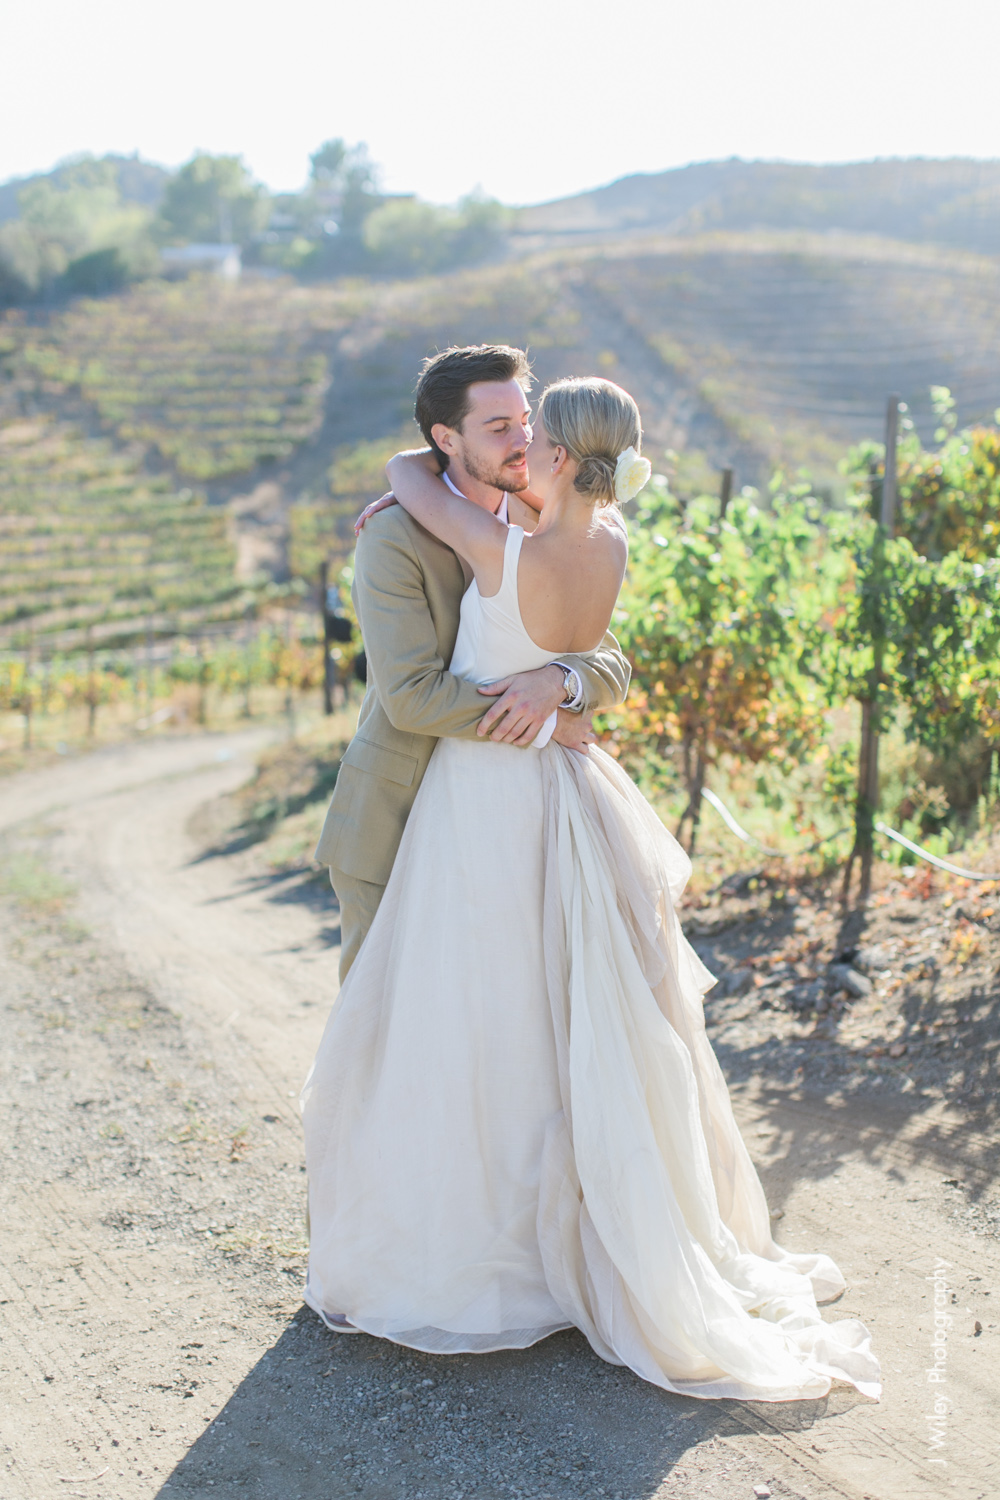 j wiley rustic whimiscal saddlerock ranch vineyard wedding malibu neutral gold mountains-1183